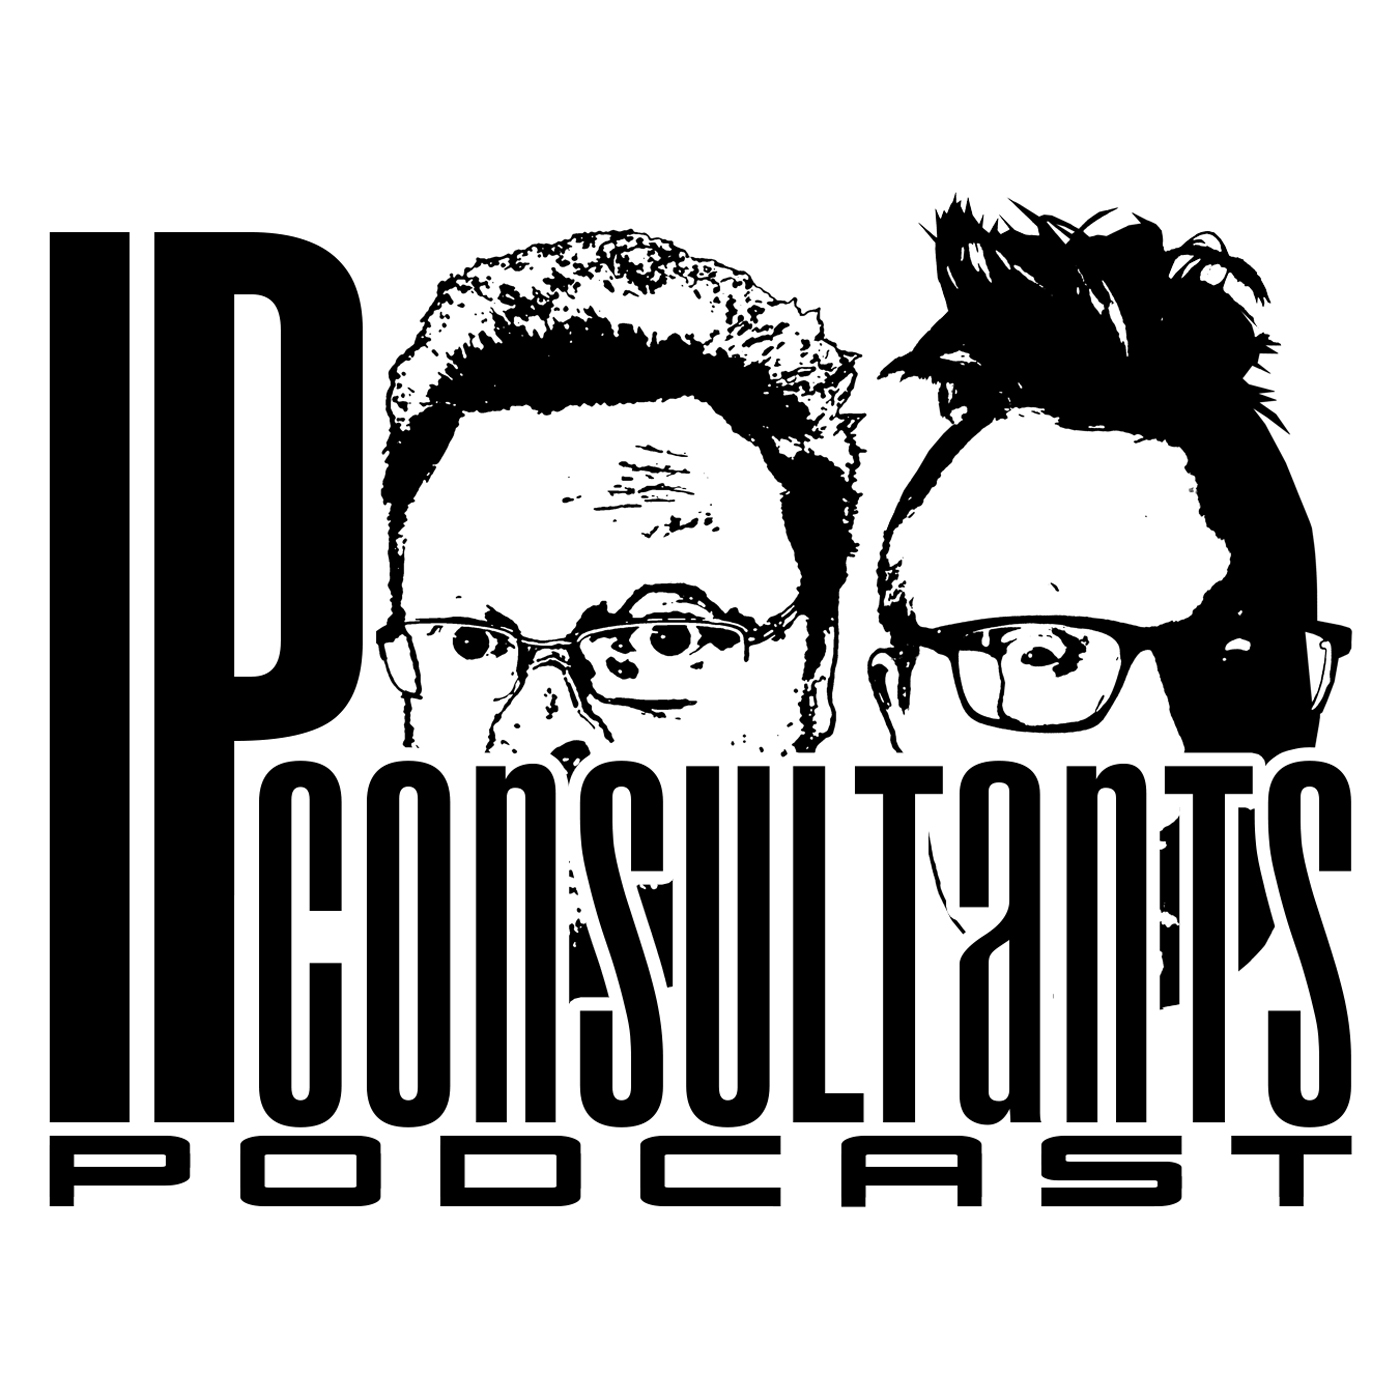 IP Consultants Podcast